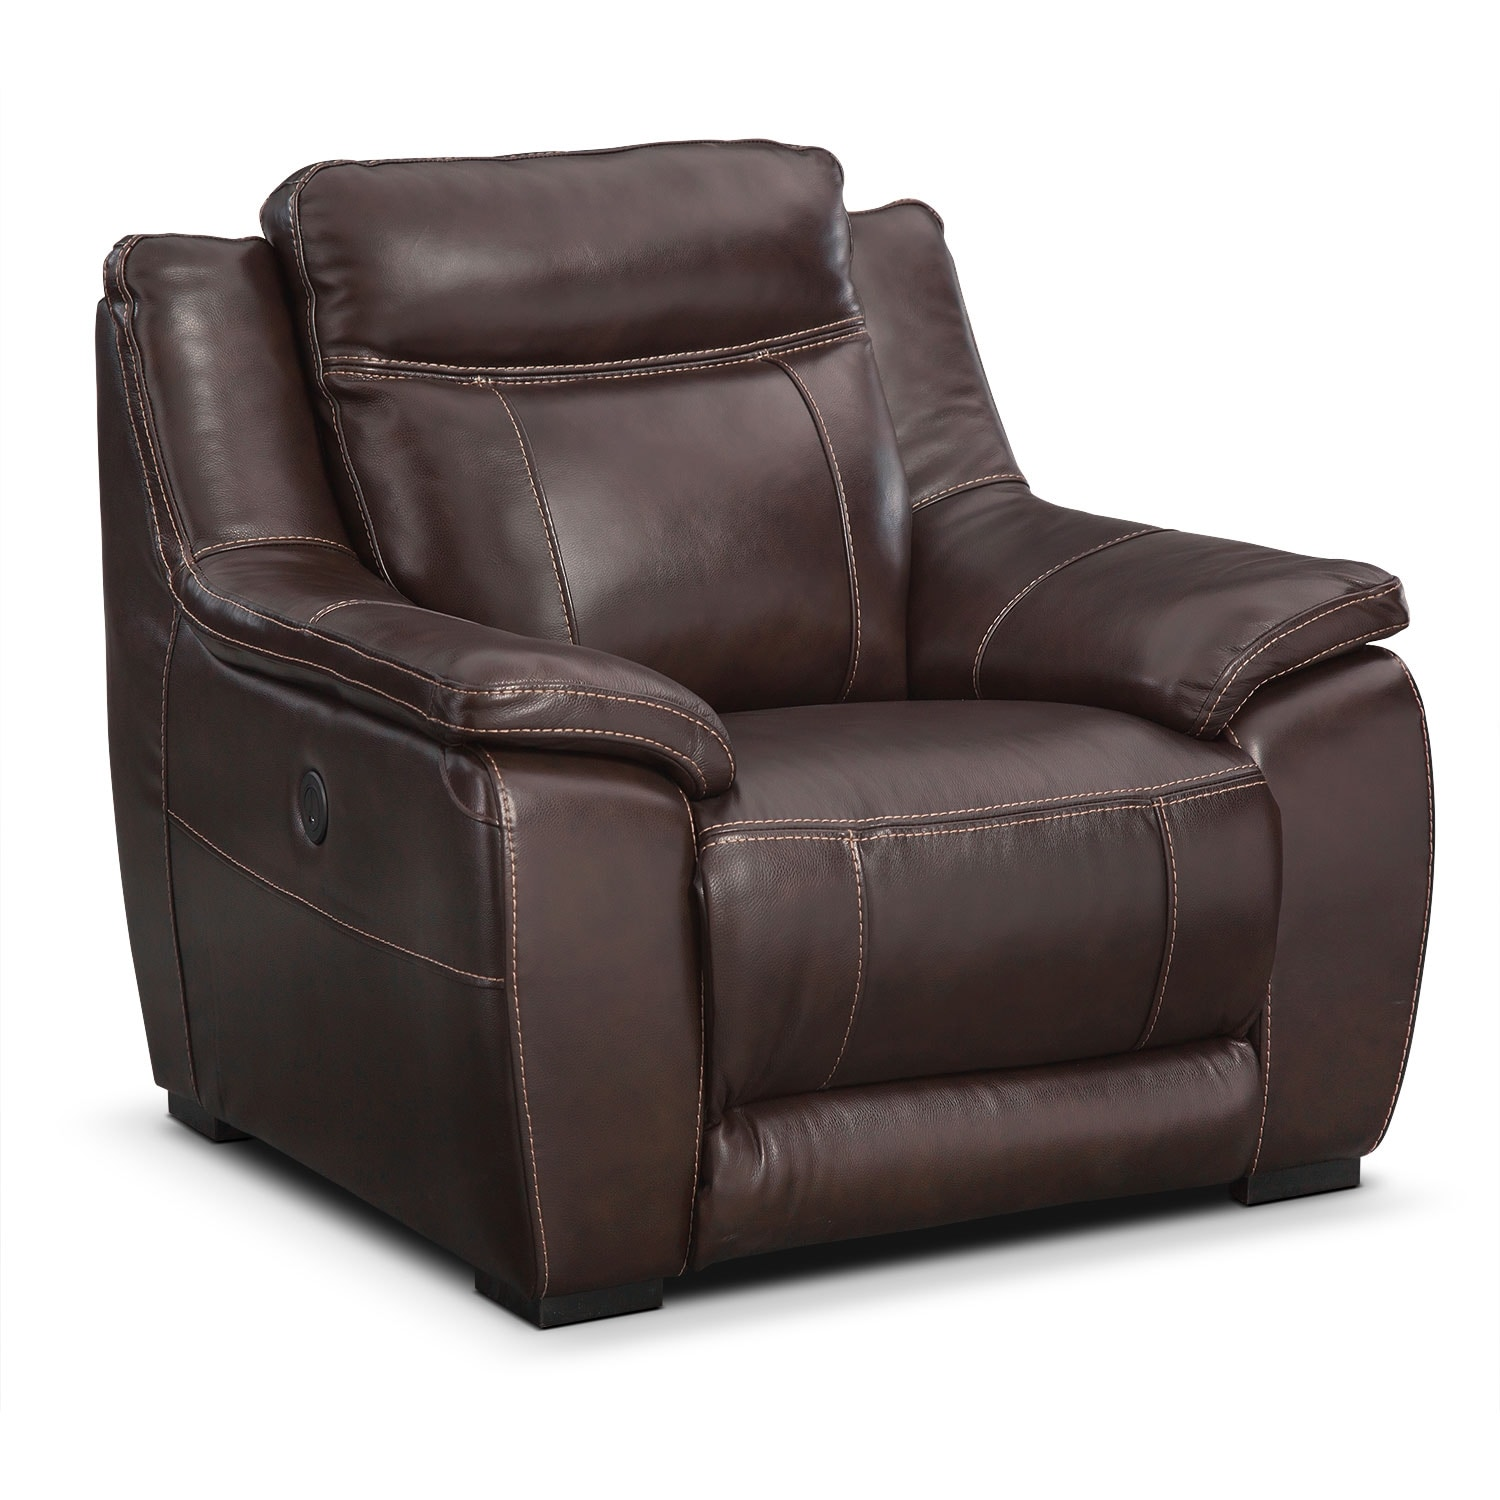 Lido Power Reclining Sofa, Reclining Loveseat And Recliner